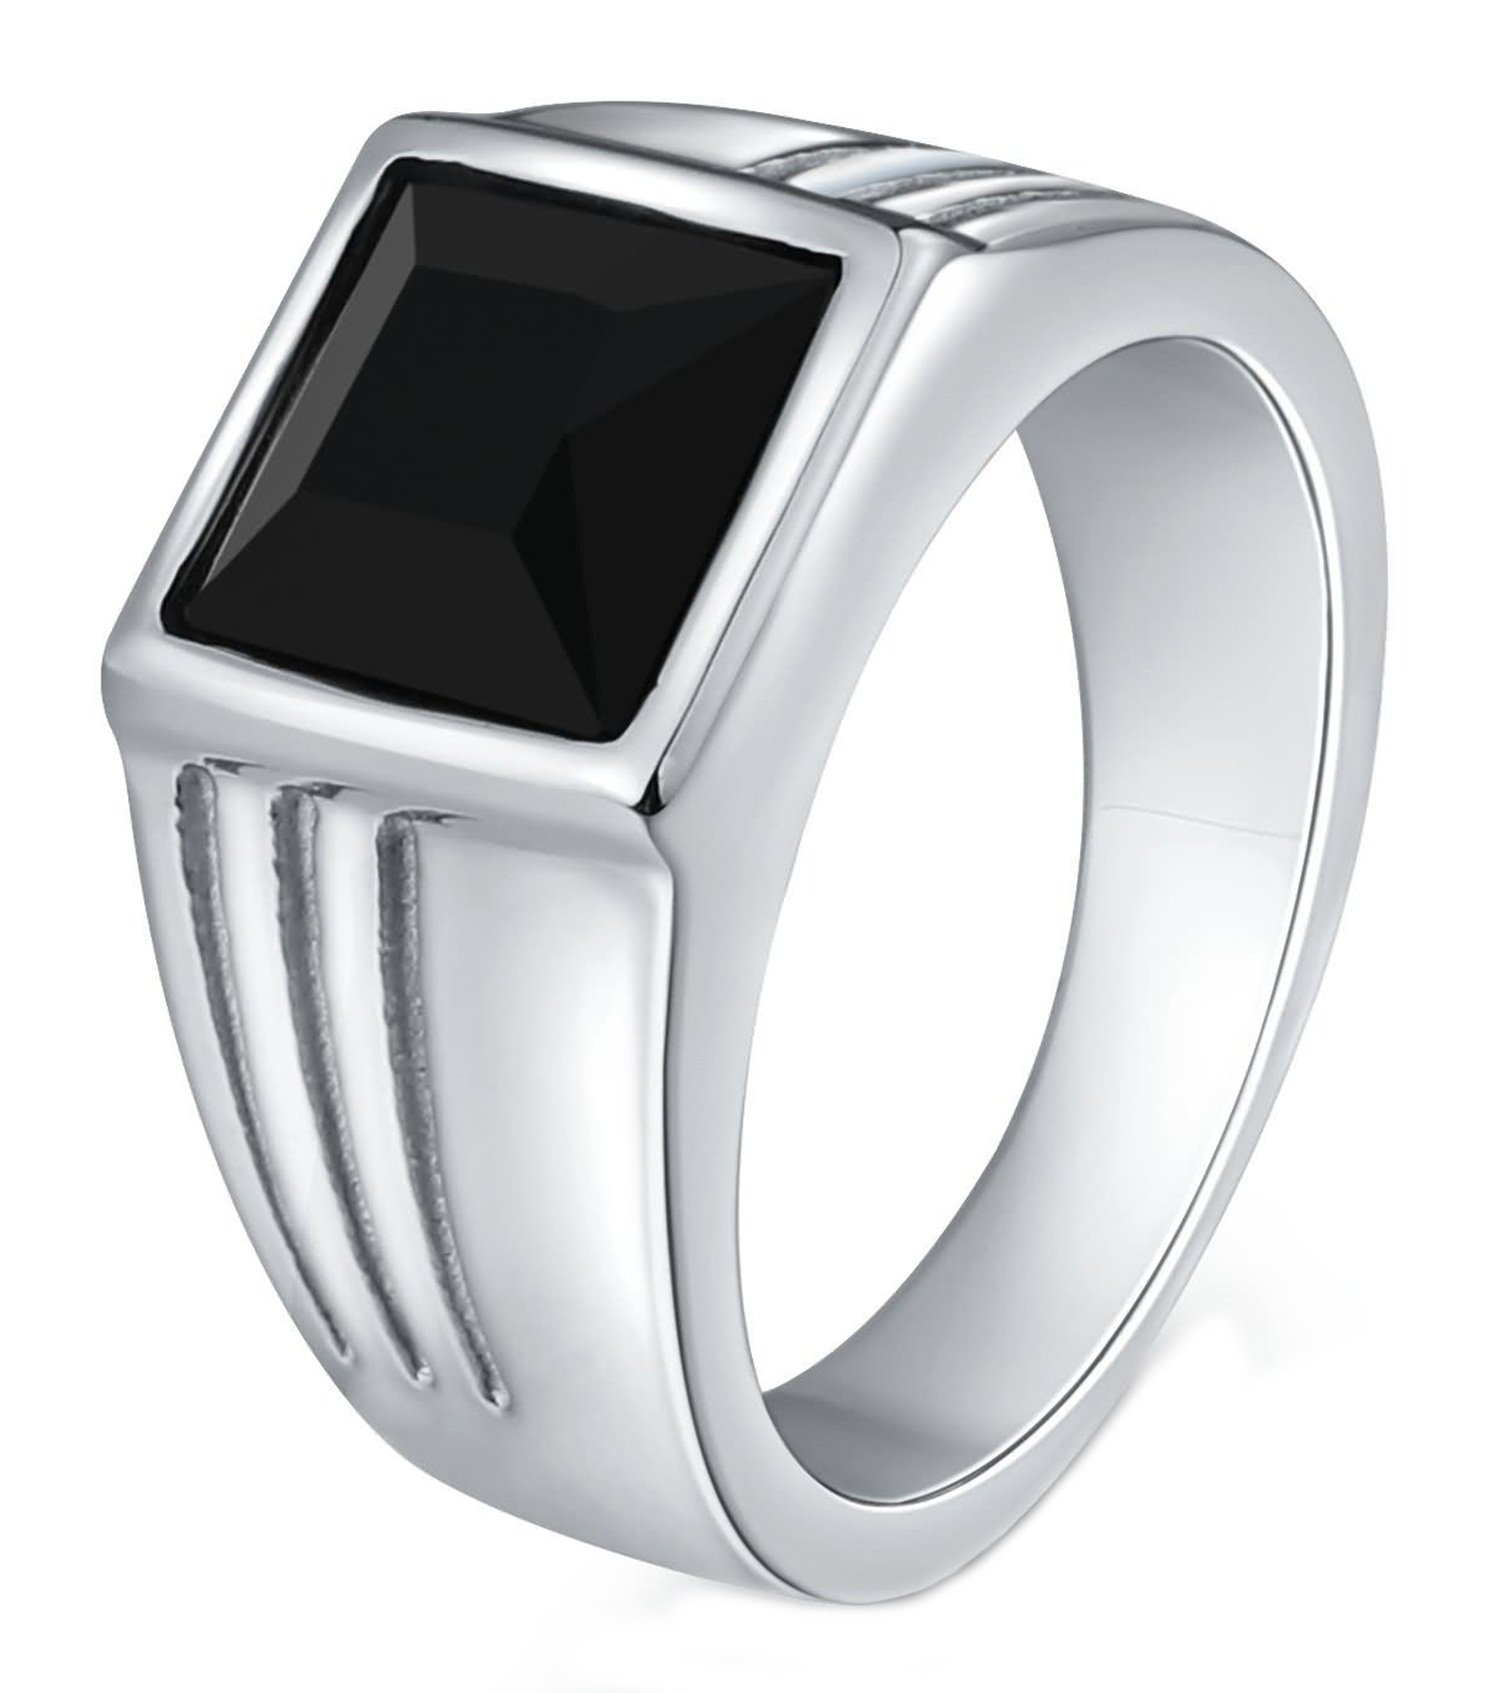 Gnzoe Men Stainless Steel Ring for Father Class Ring CZ Stone Princess Cut 10MM Silver Black Size 8